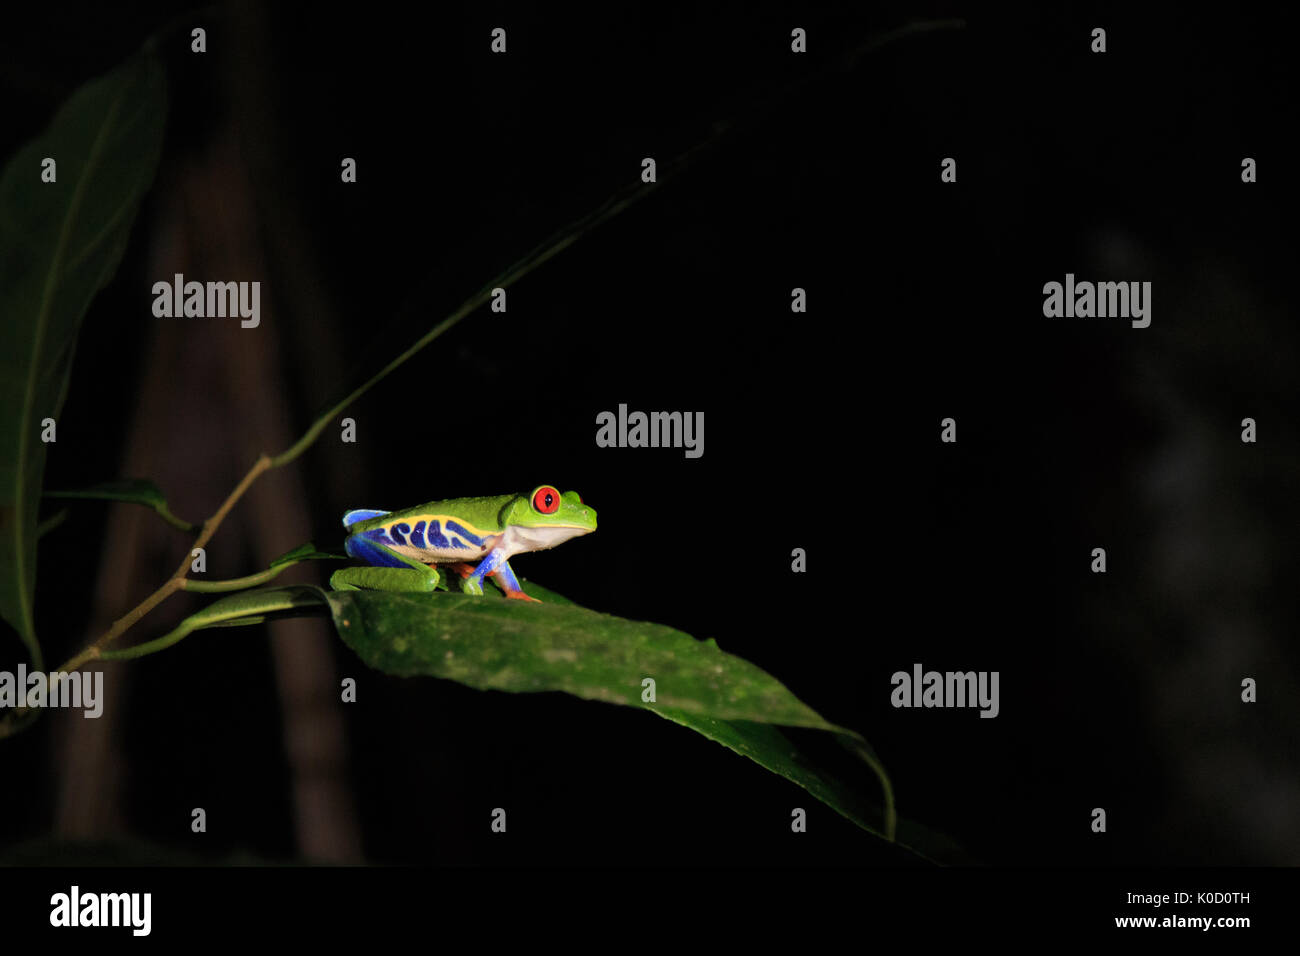 A Red-eyed Tree Frog at night at Maquenque Eco-lodge, Costa Rica. Stock Photo